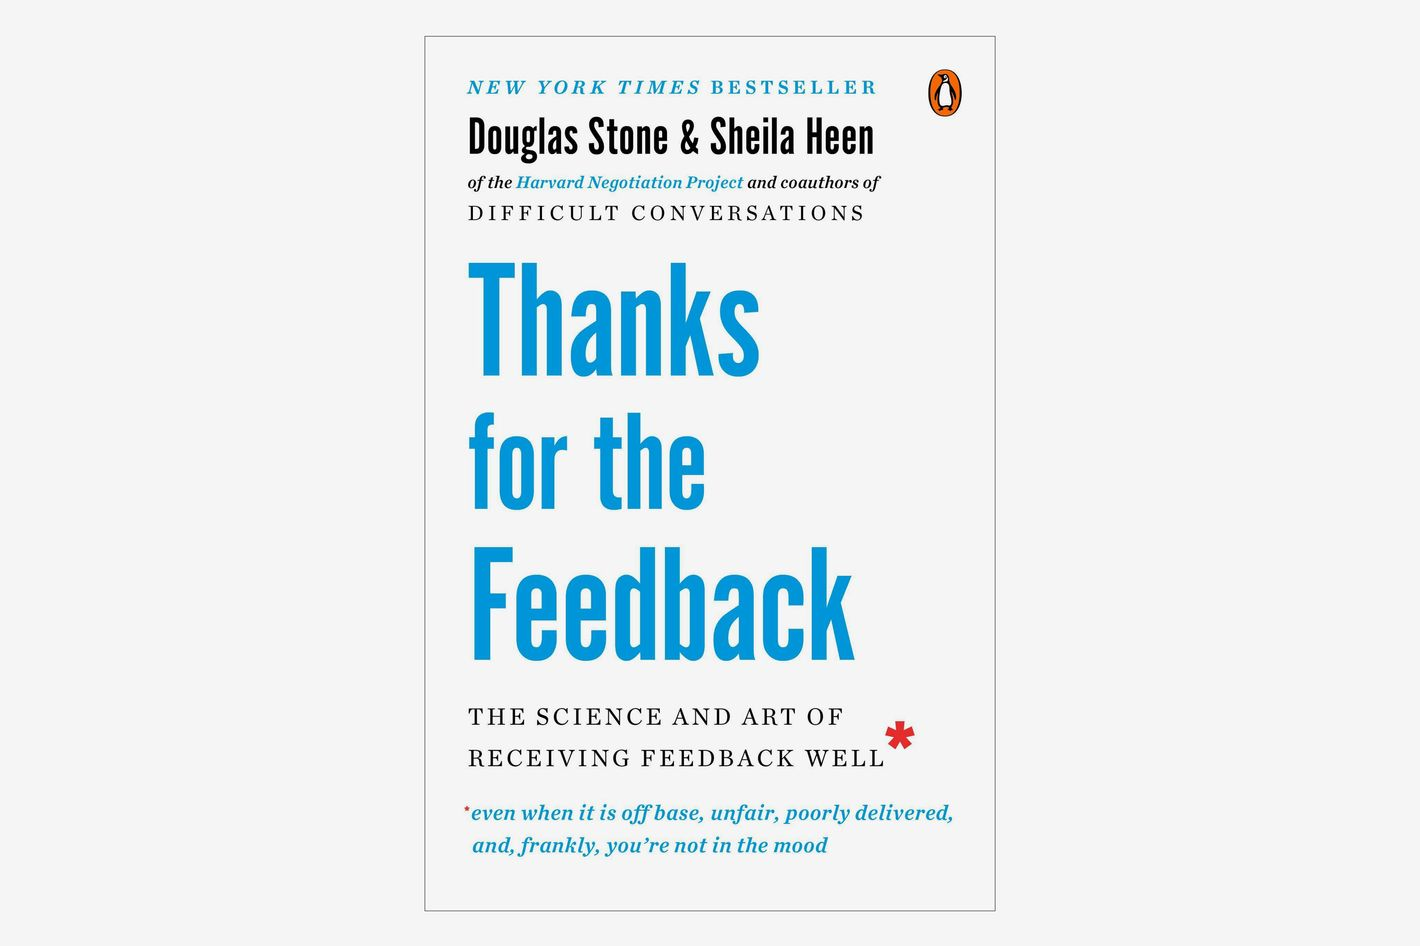 <em>Thanks for the Feedback: The Science and Art of Receiving Feedback Well</em>, by Douglas Stone and Sheila Heen